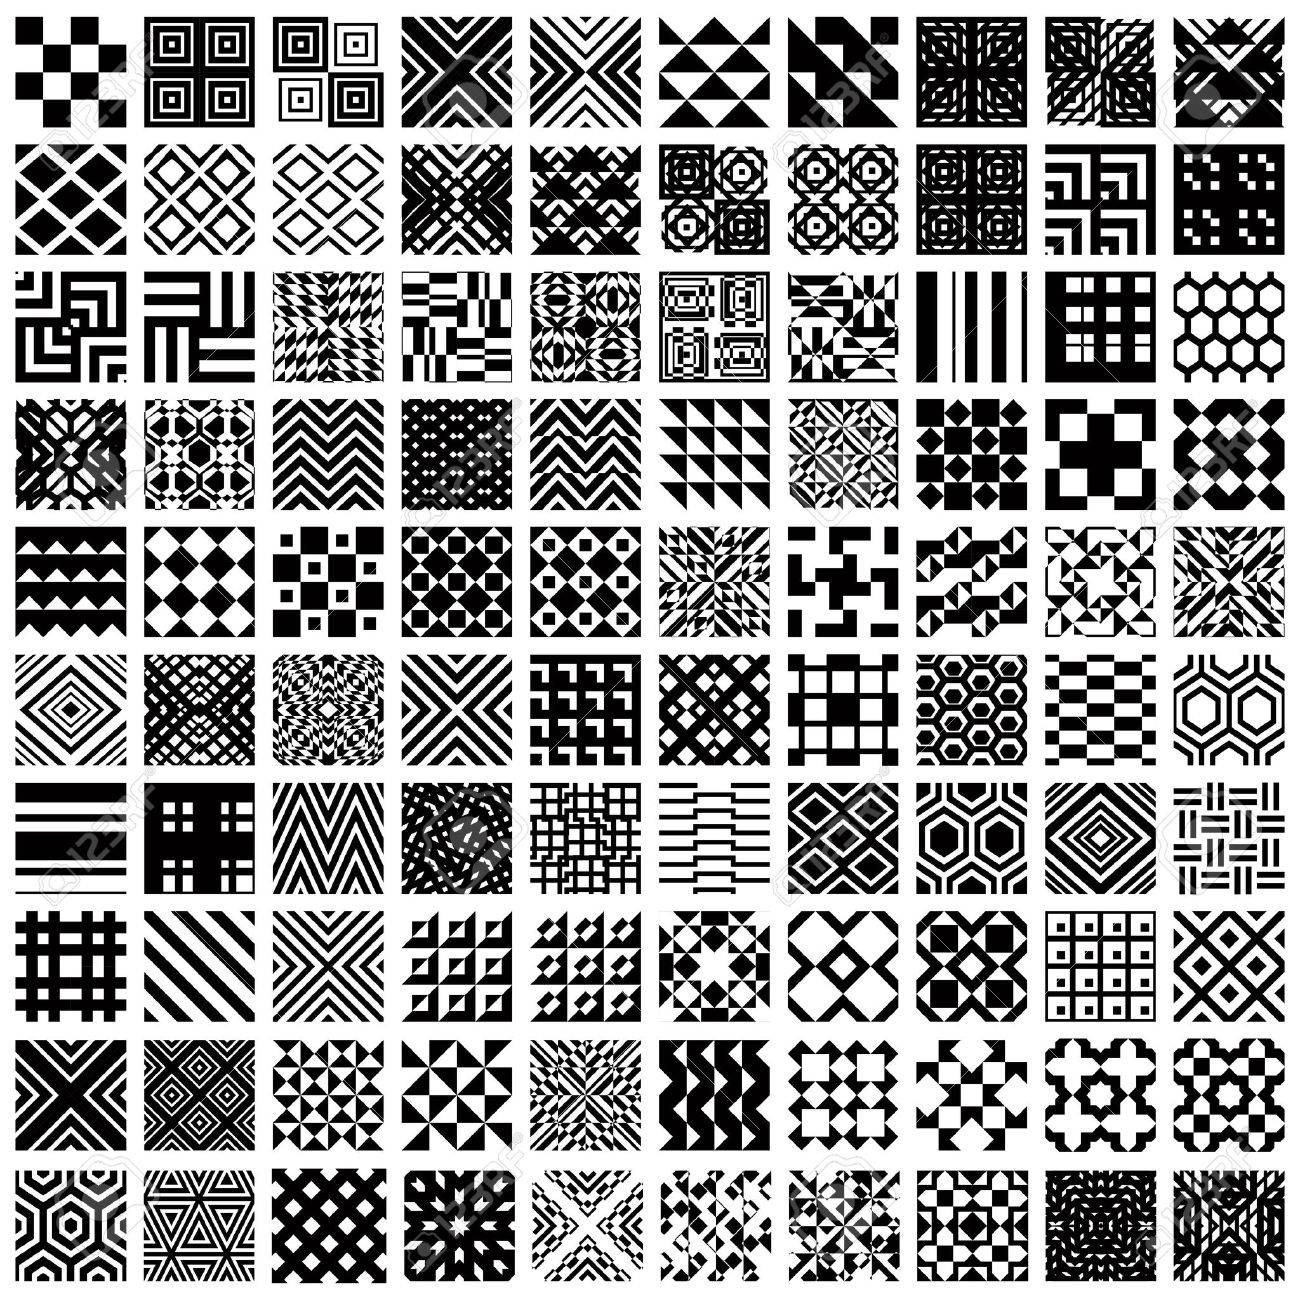 100 geometric seamless patterns set, black and white vector backgrounds collection. Stock Vector - 30251090